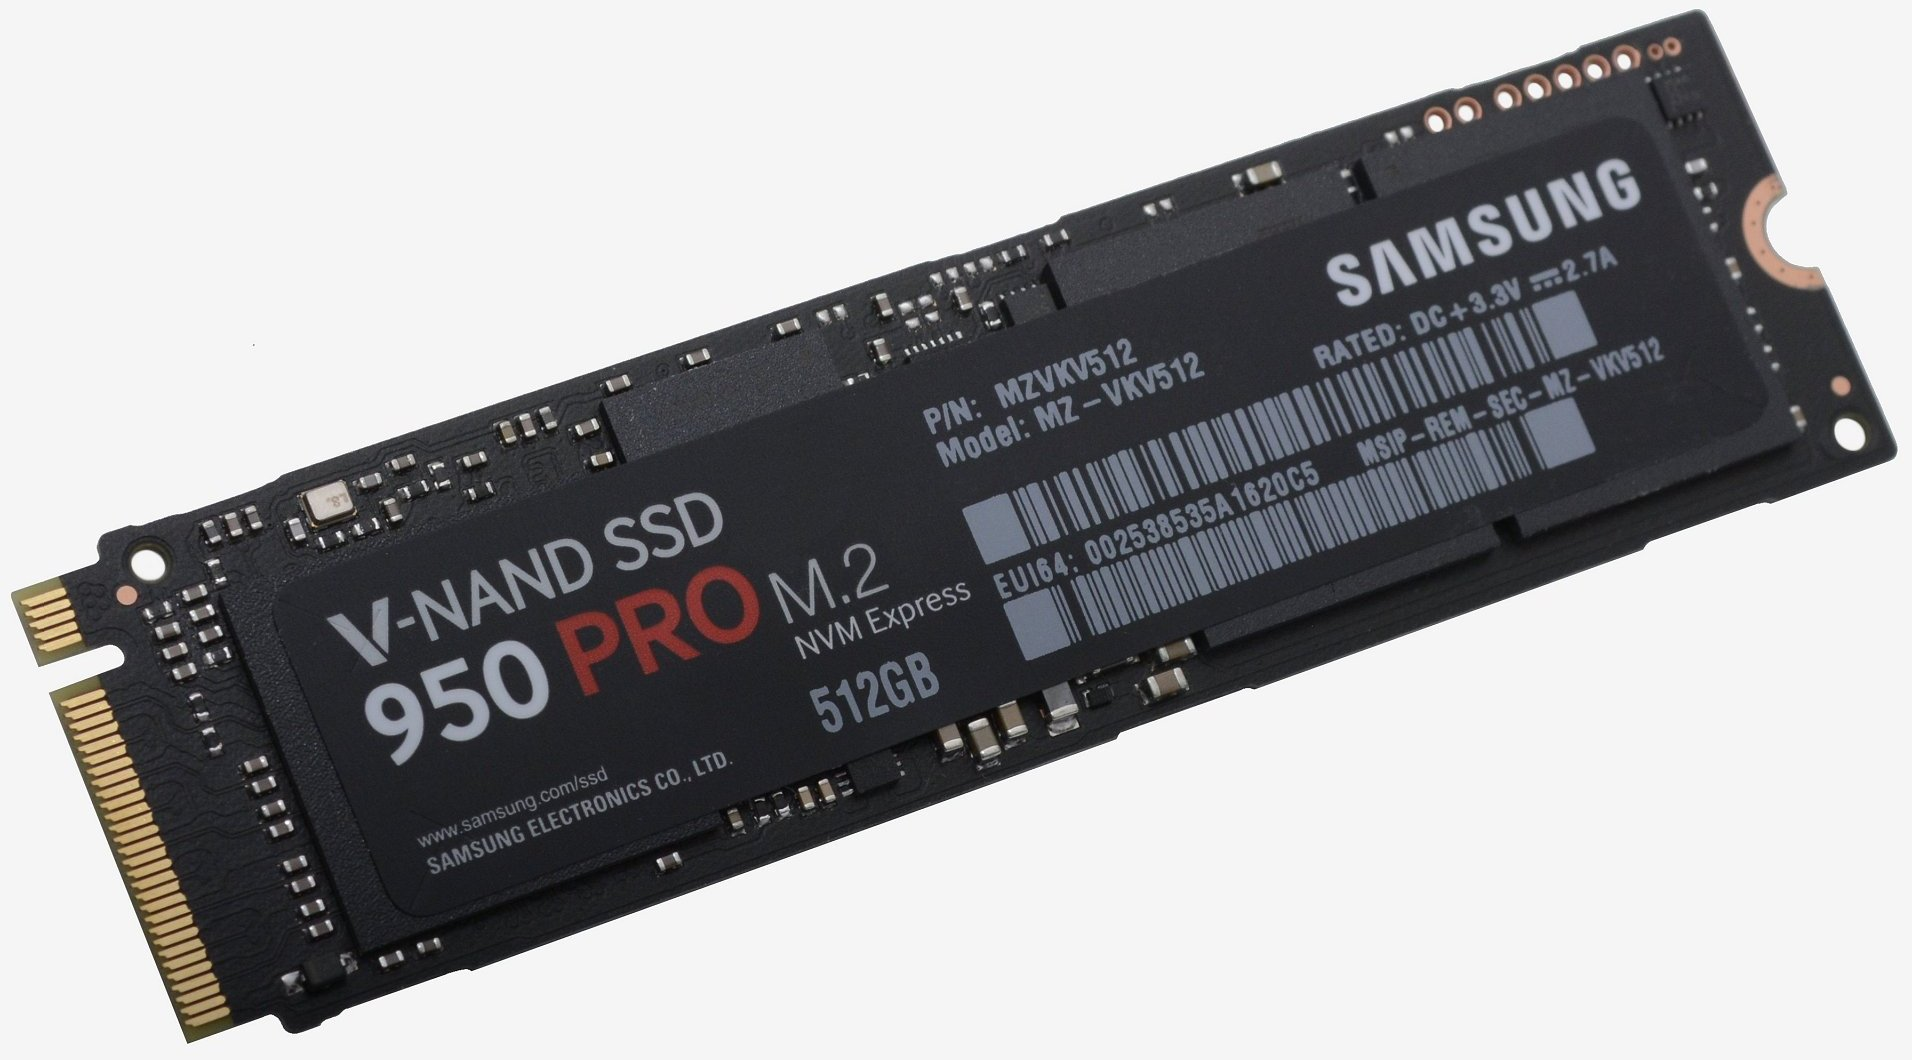 Tpico Geral Dos Ssds Pagina 37 V Gen Ssd Sata 3 120gb Kalender The Claimed Sequential Performance Is Staggering As 512gb Model Boasts A Read Throughput Of 25gb S And Write Speed 15gb